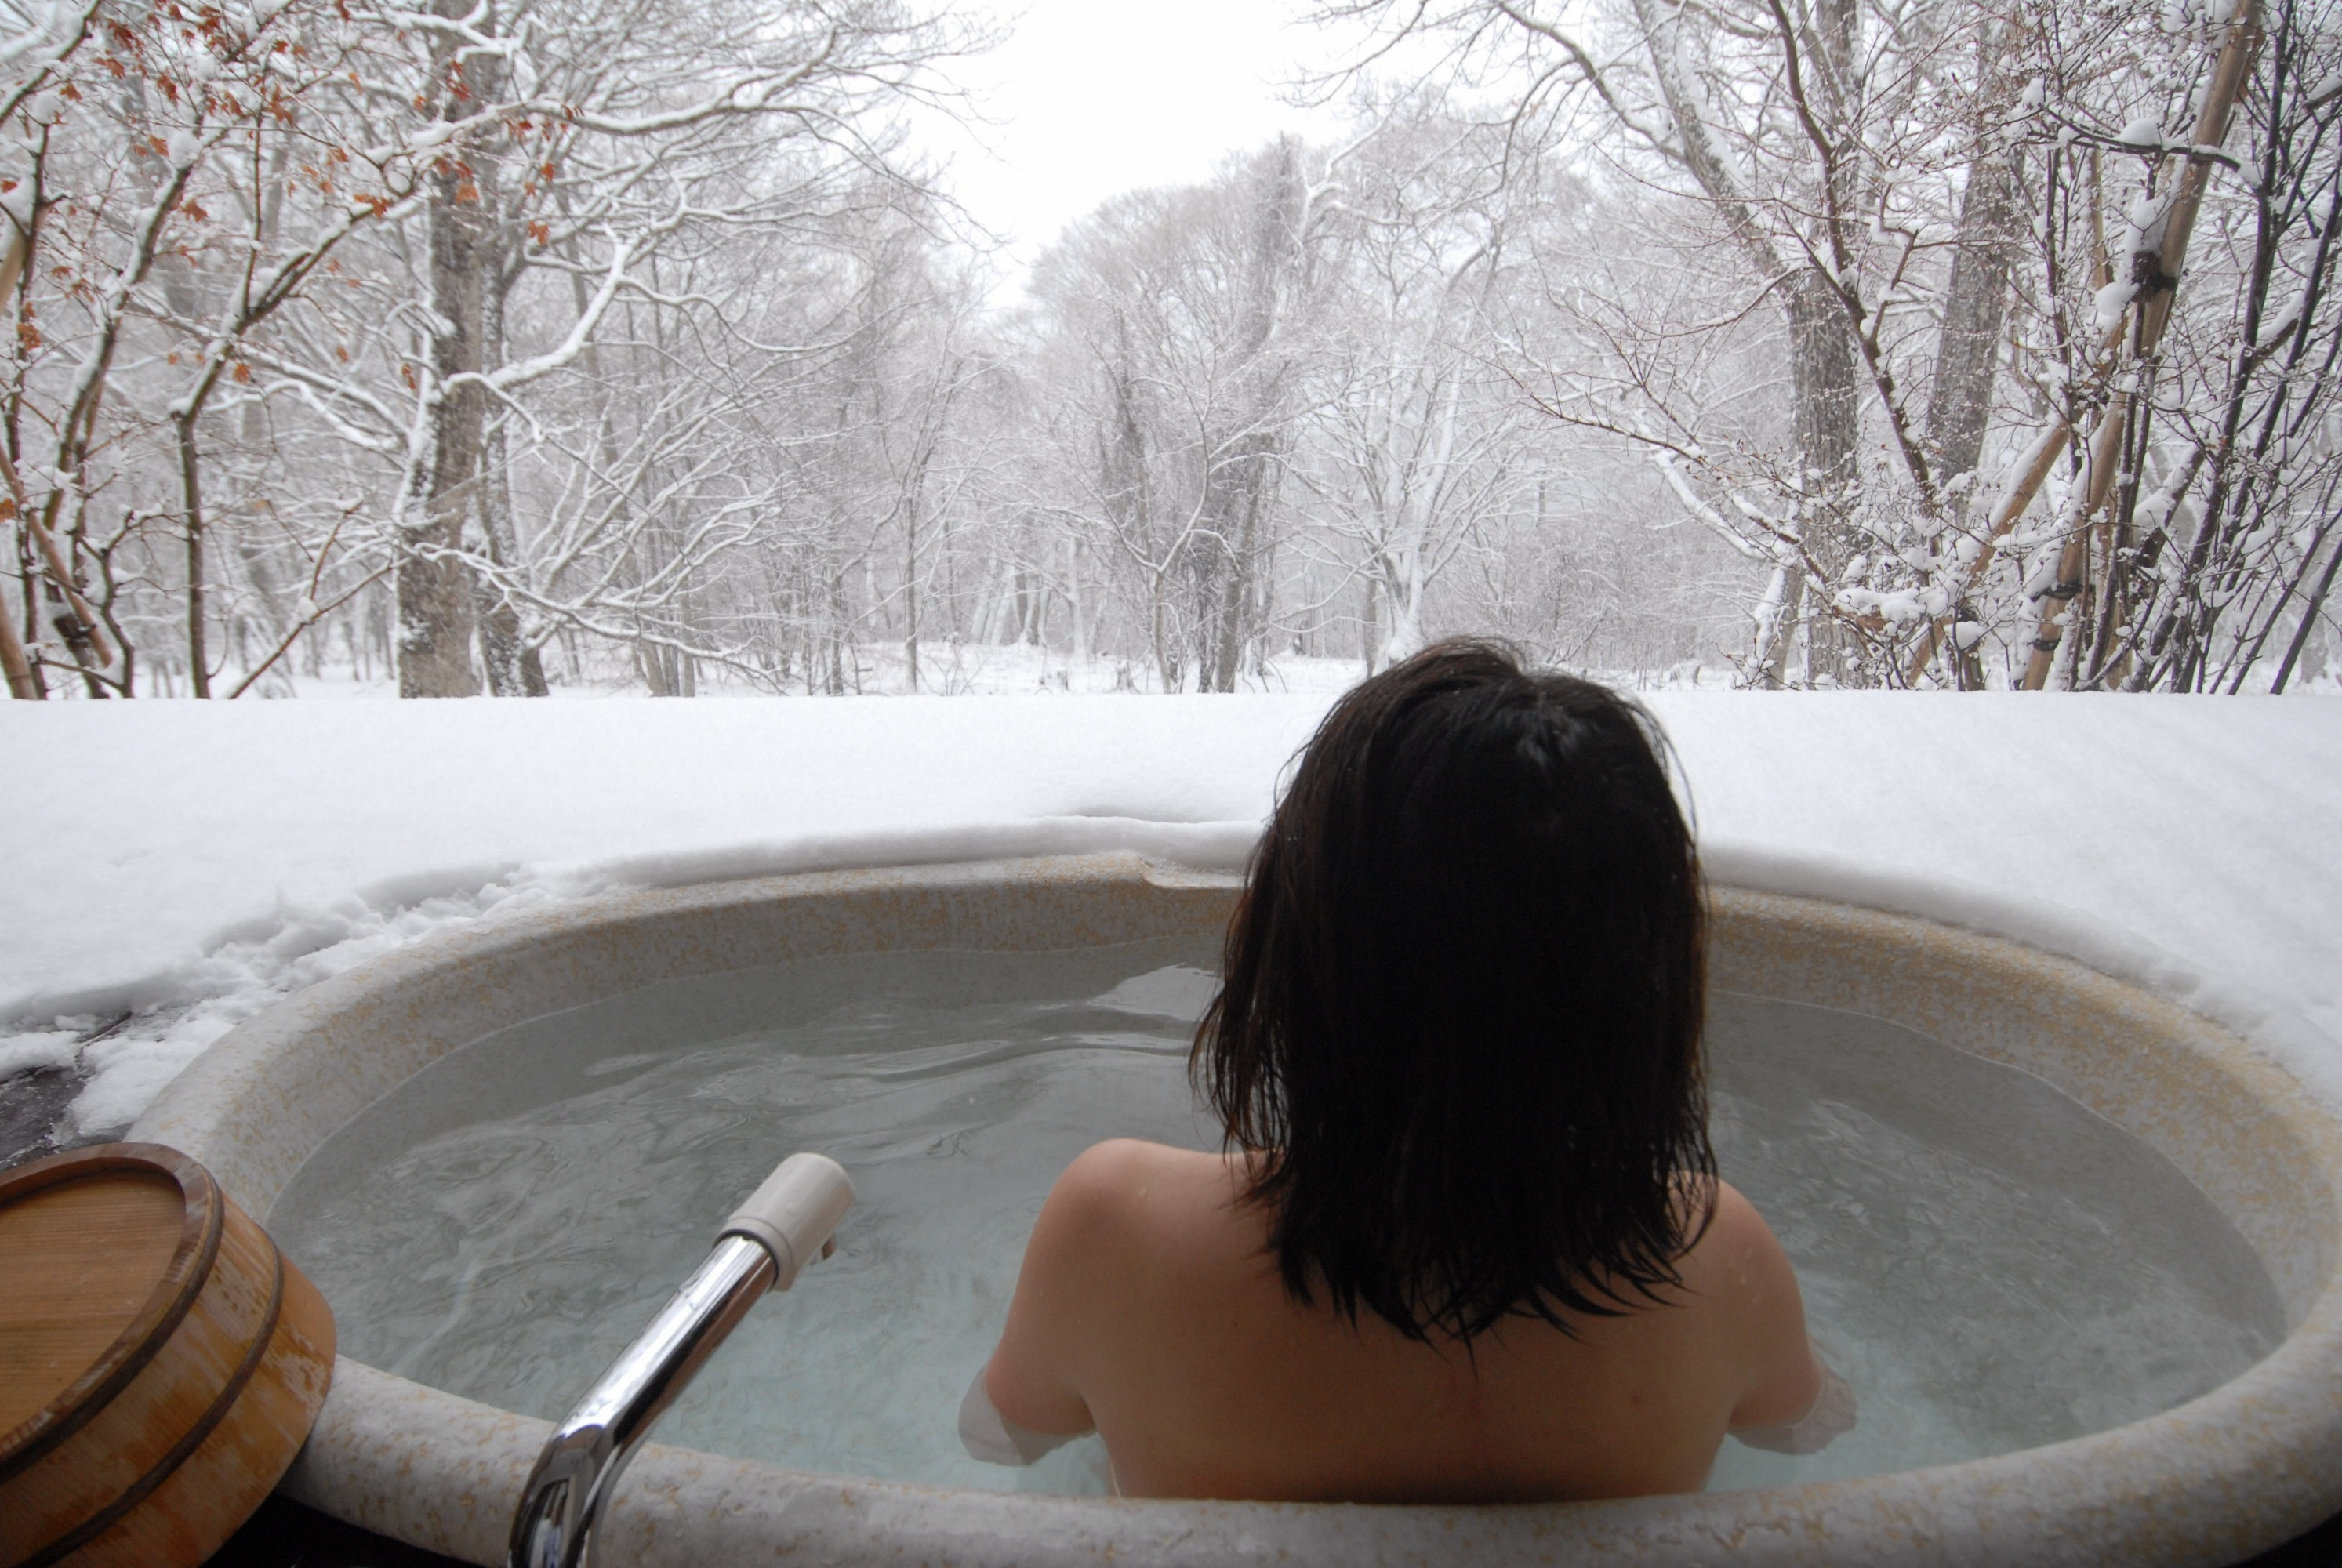 young Japanese woman in a hot open air bath while snowing